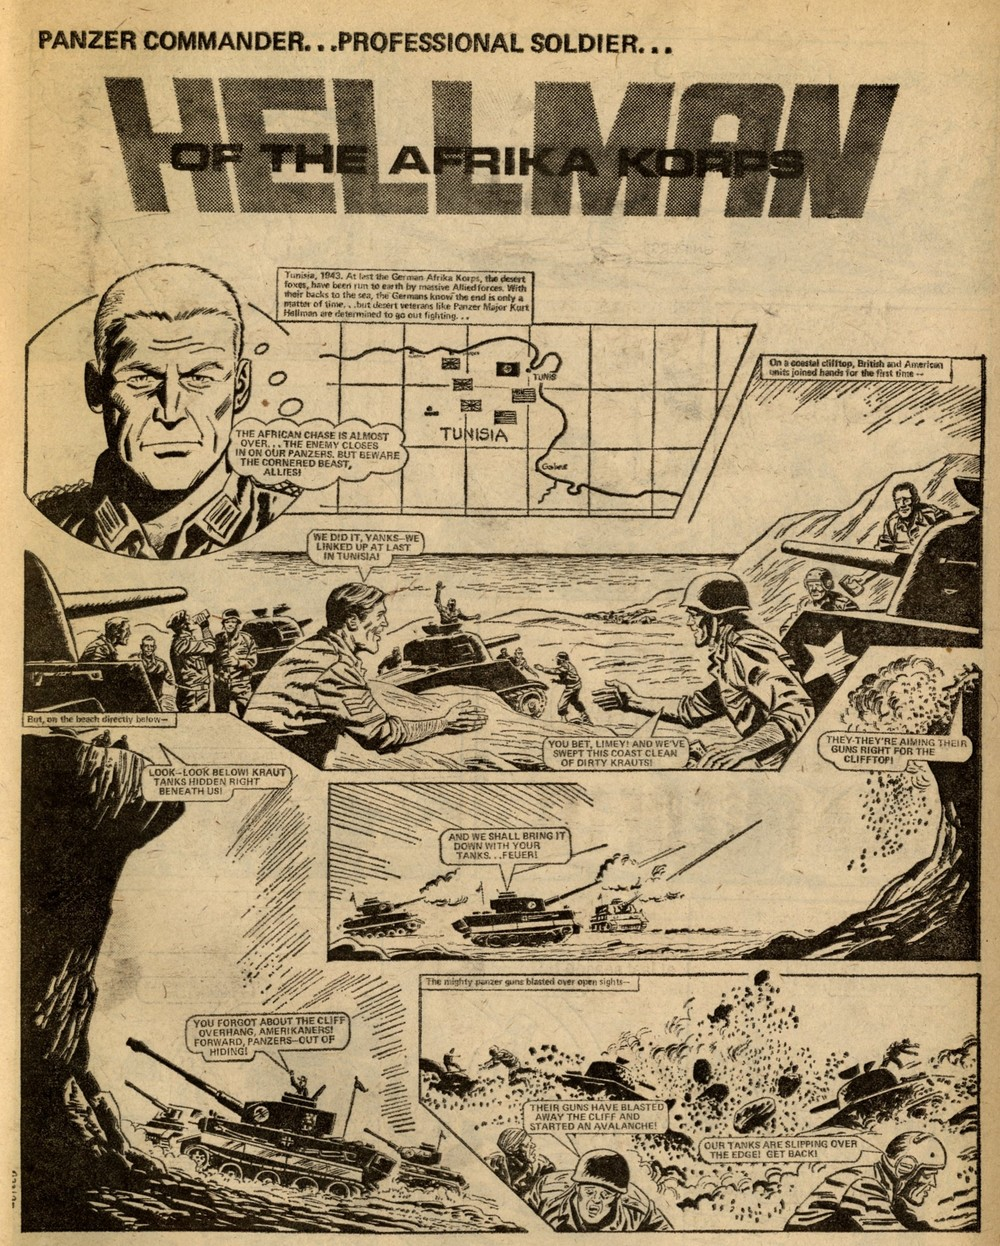 Hellman of the Afrika Korps: Gerry Finley-Day (writer), artist unknown